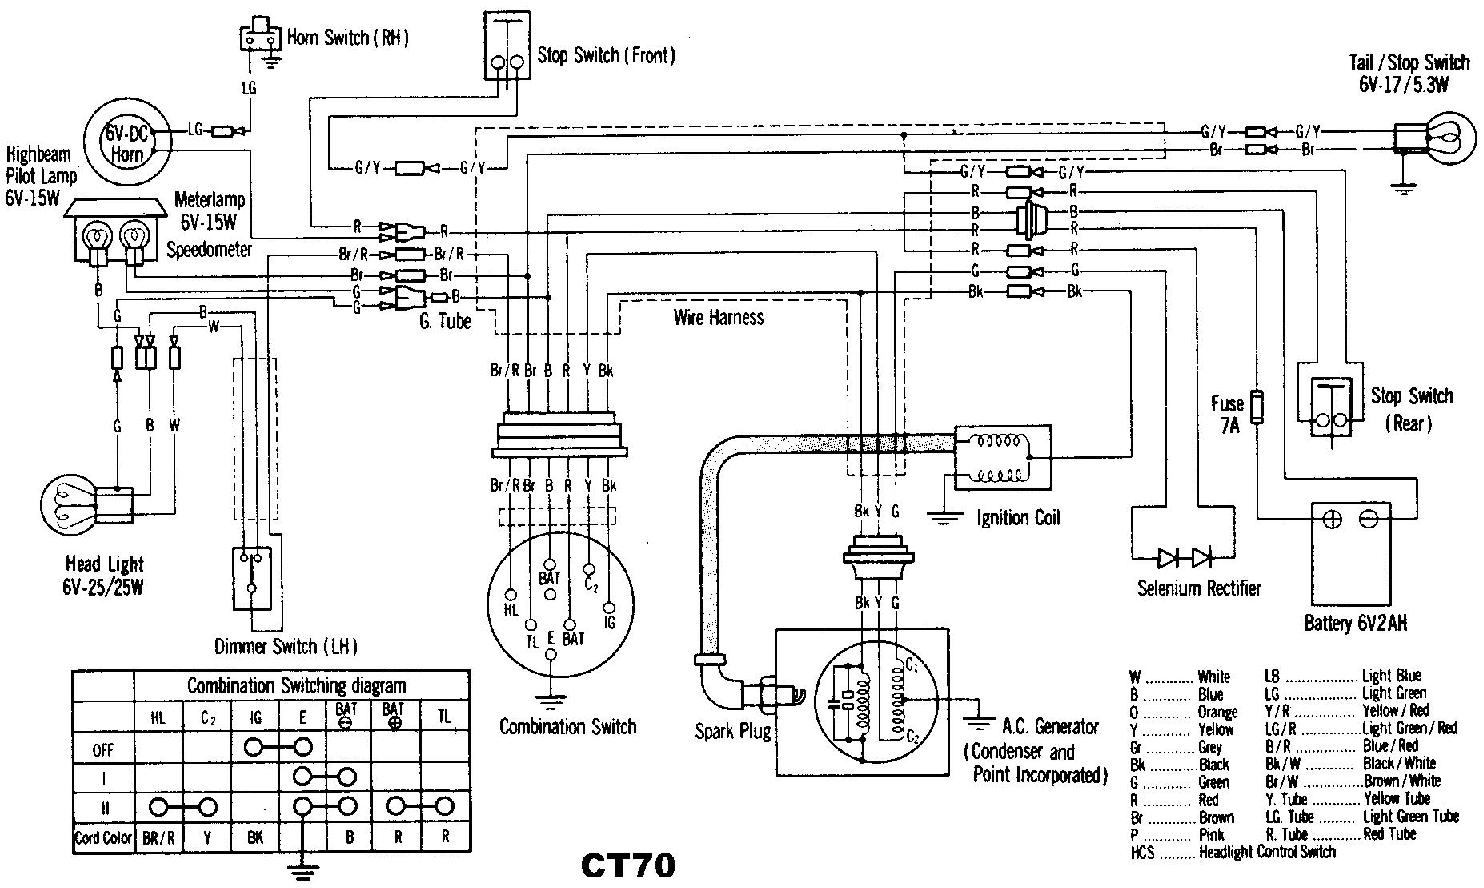 holden colorado trailer wiring diagram can network wire electric brakes autos post